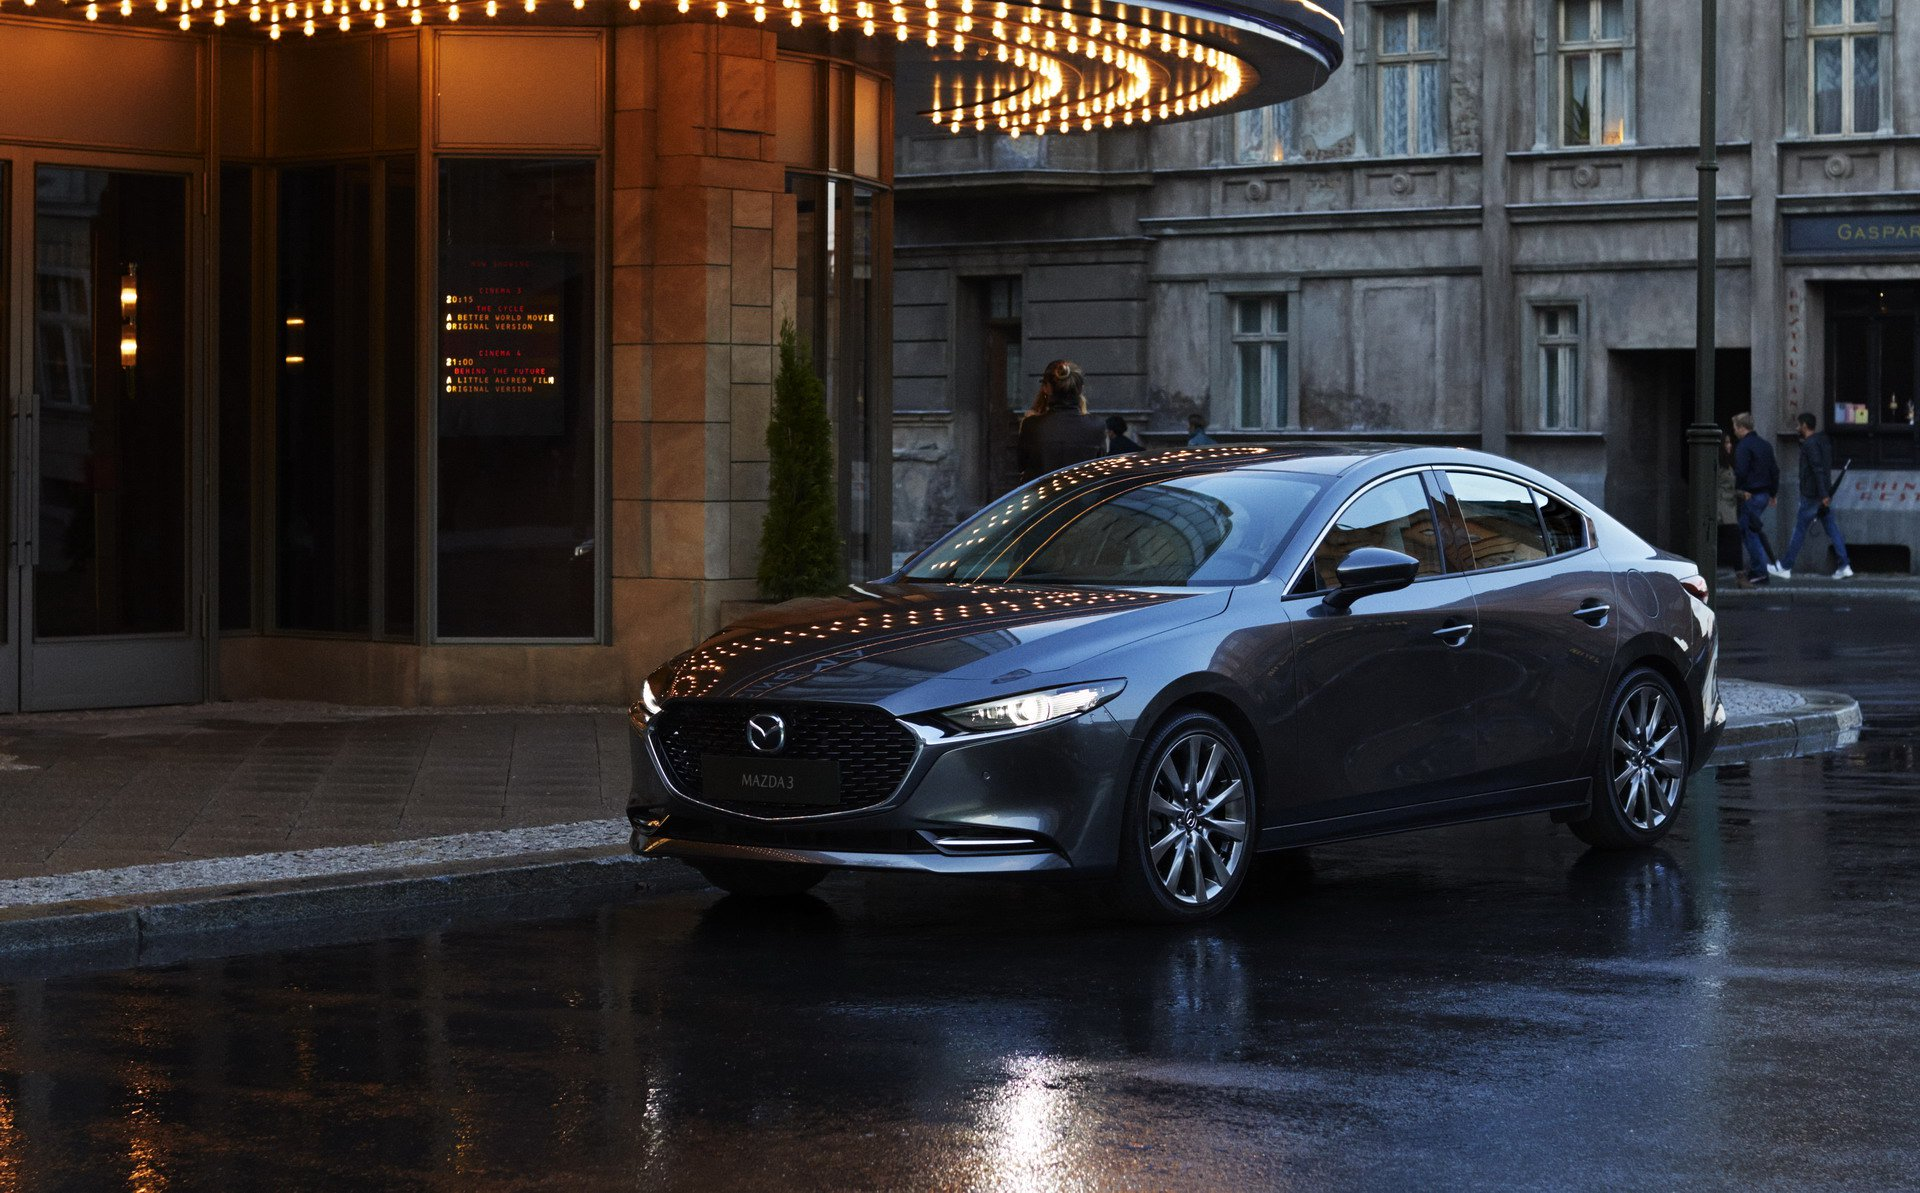 Mazda3 Hatchback and Mazda3 sedan 2019 (16)